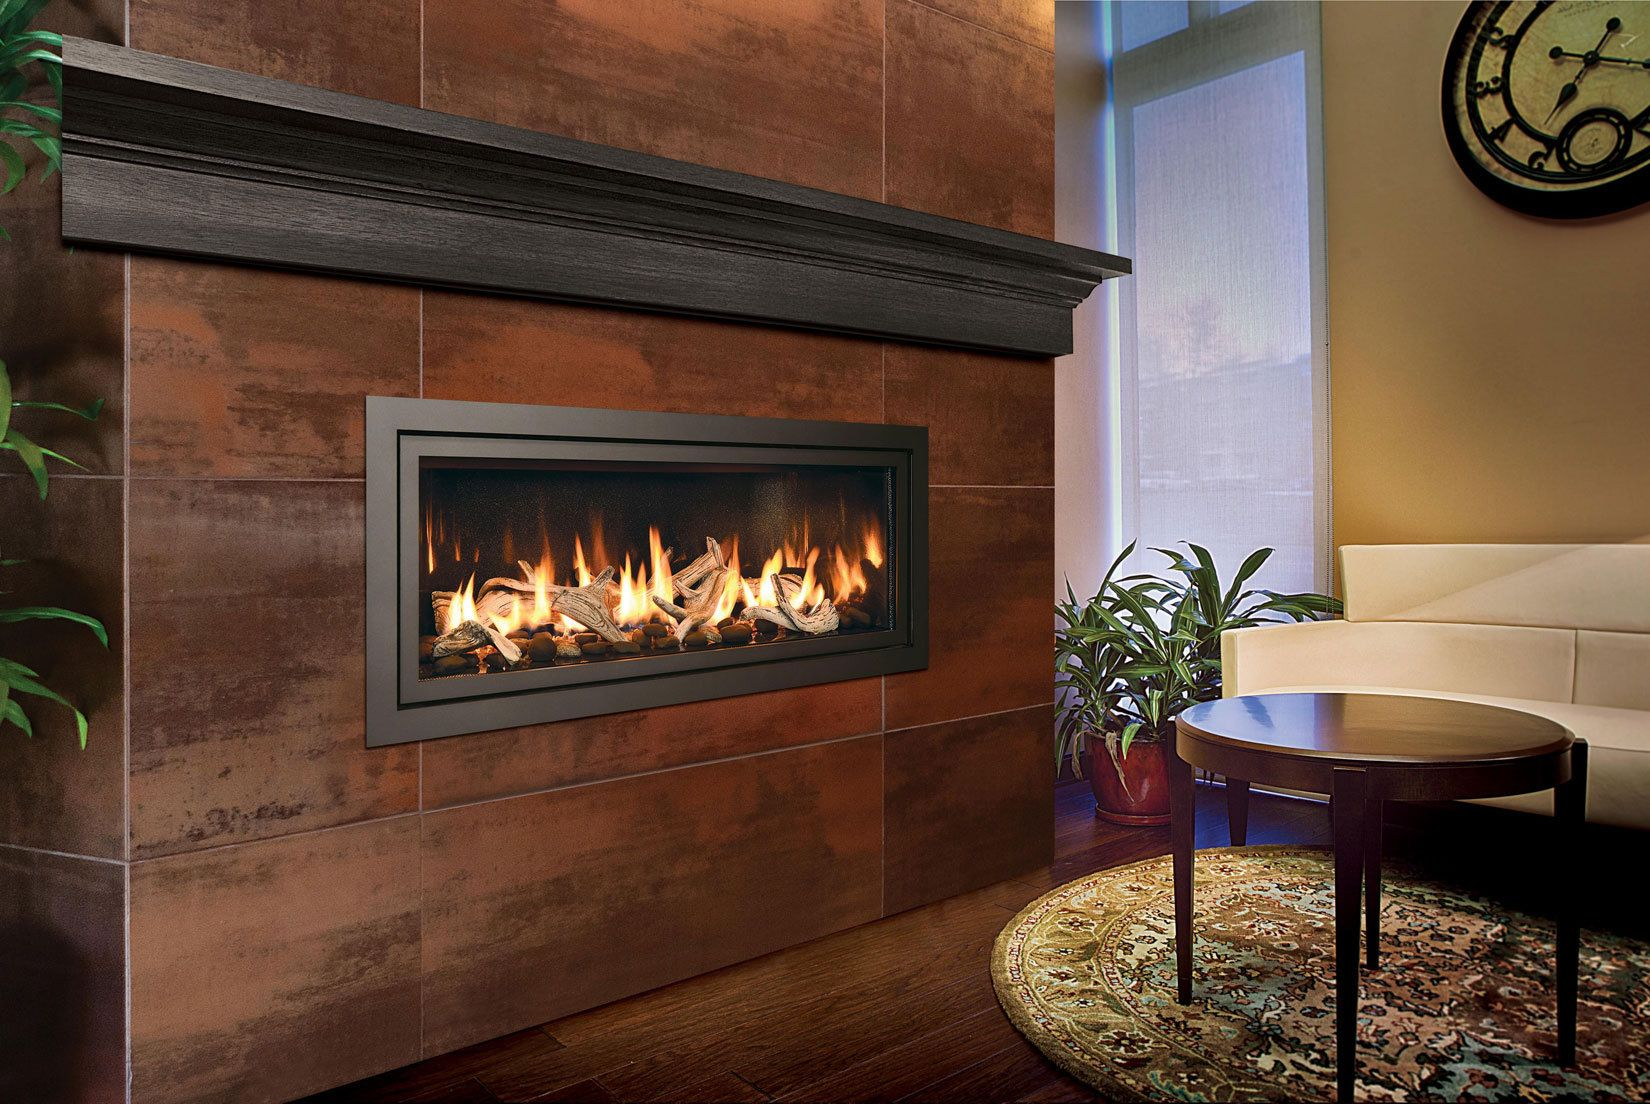 Diy Gas Fireplace Repair Have Furniture Chair Sets Round Table